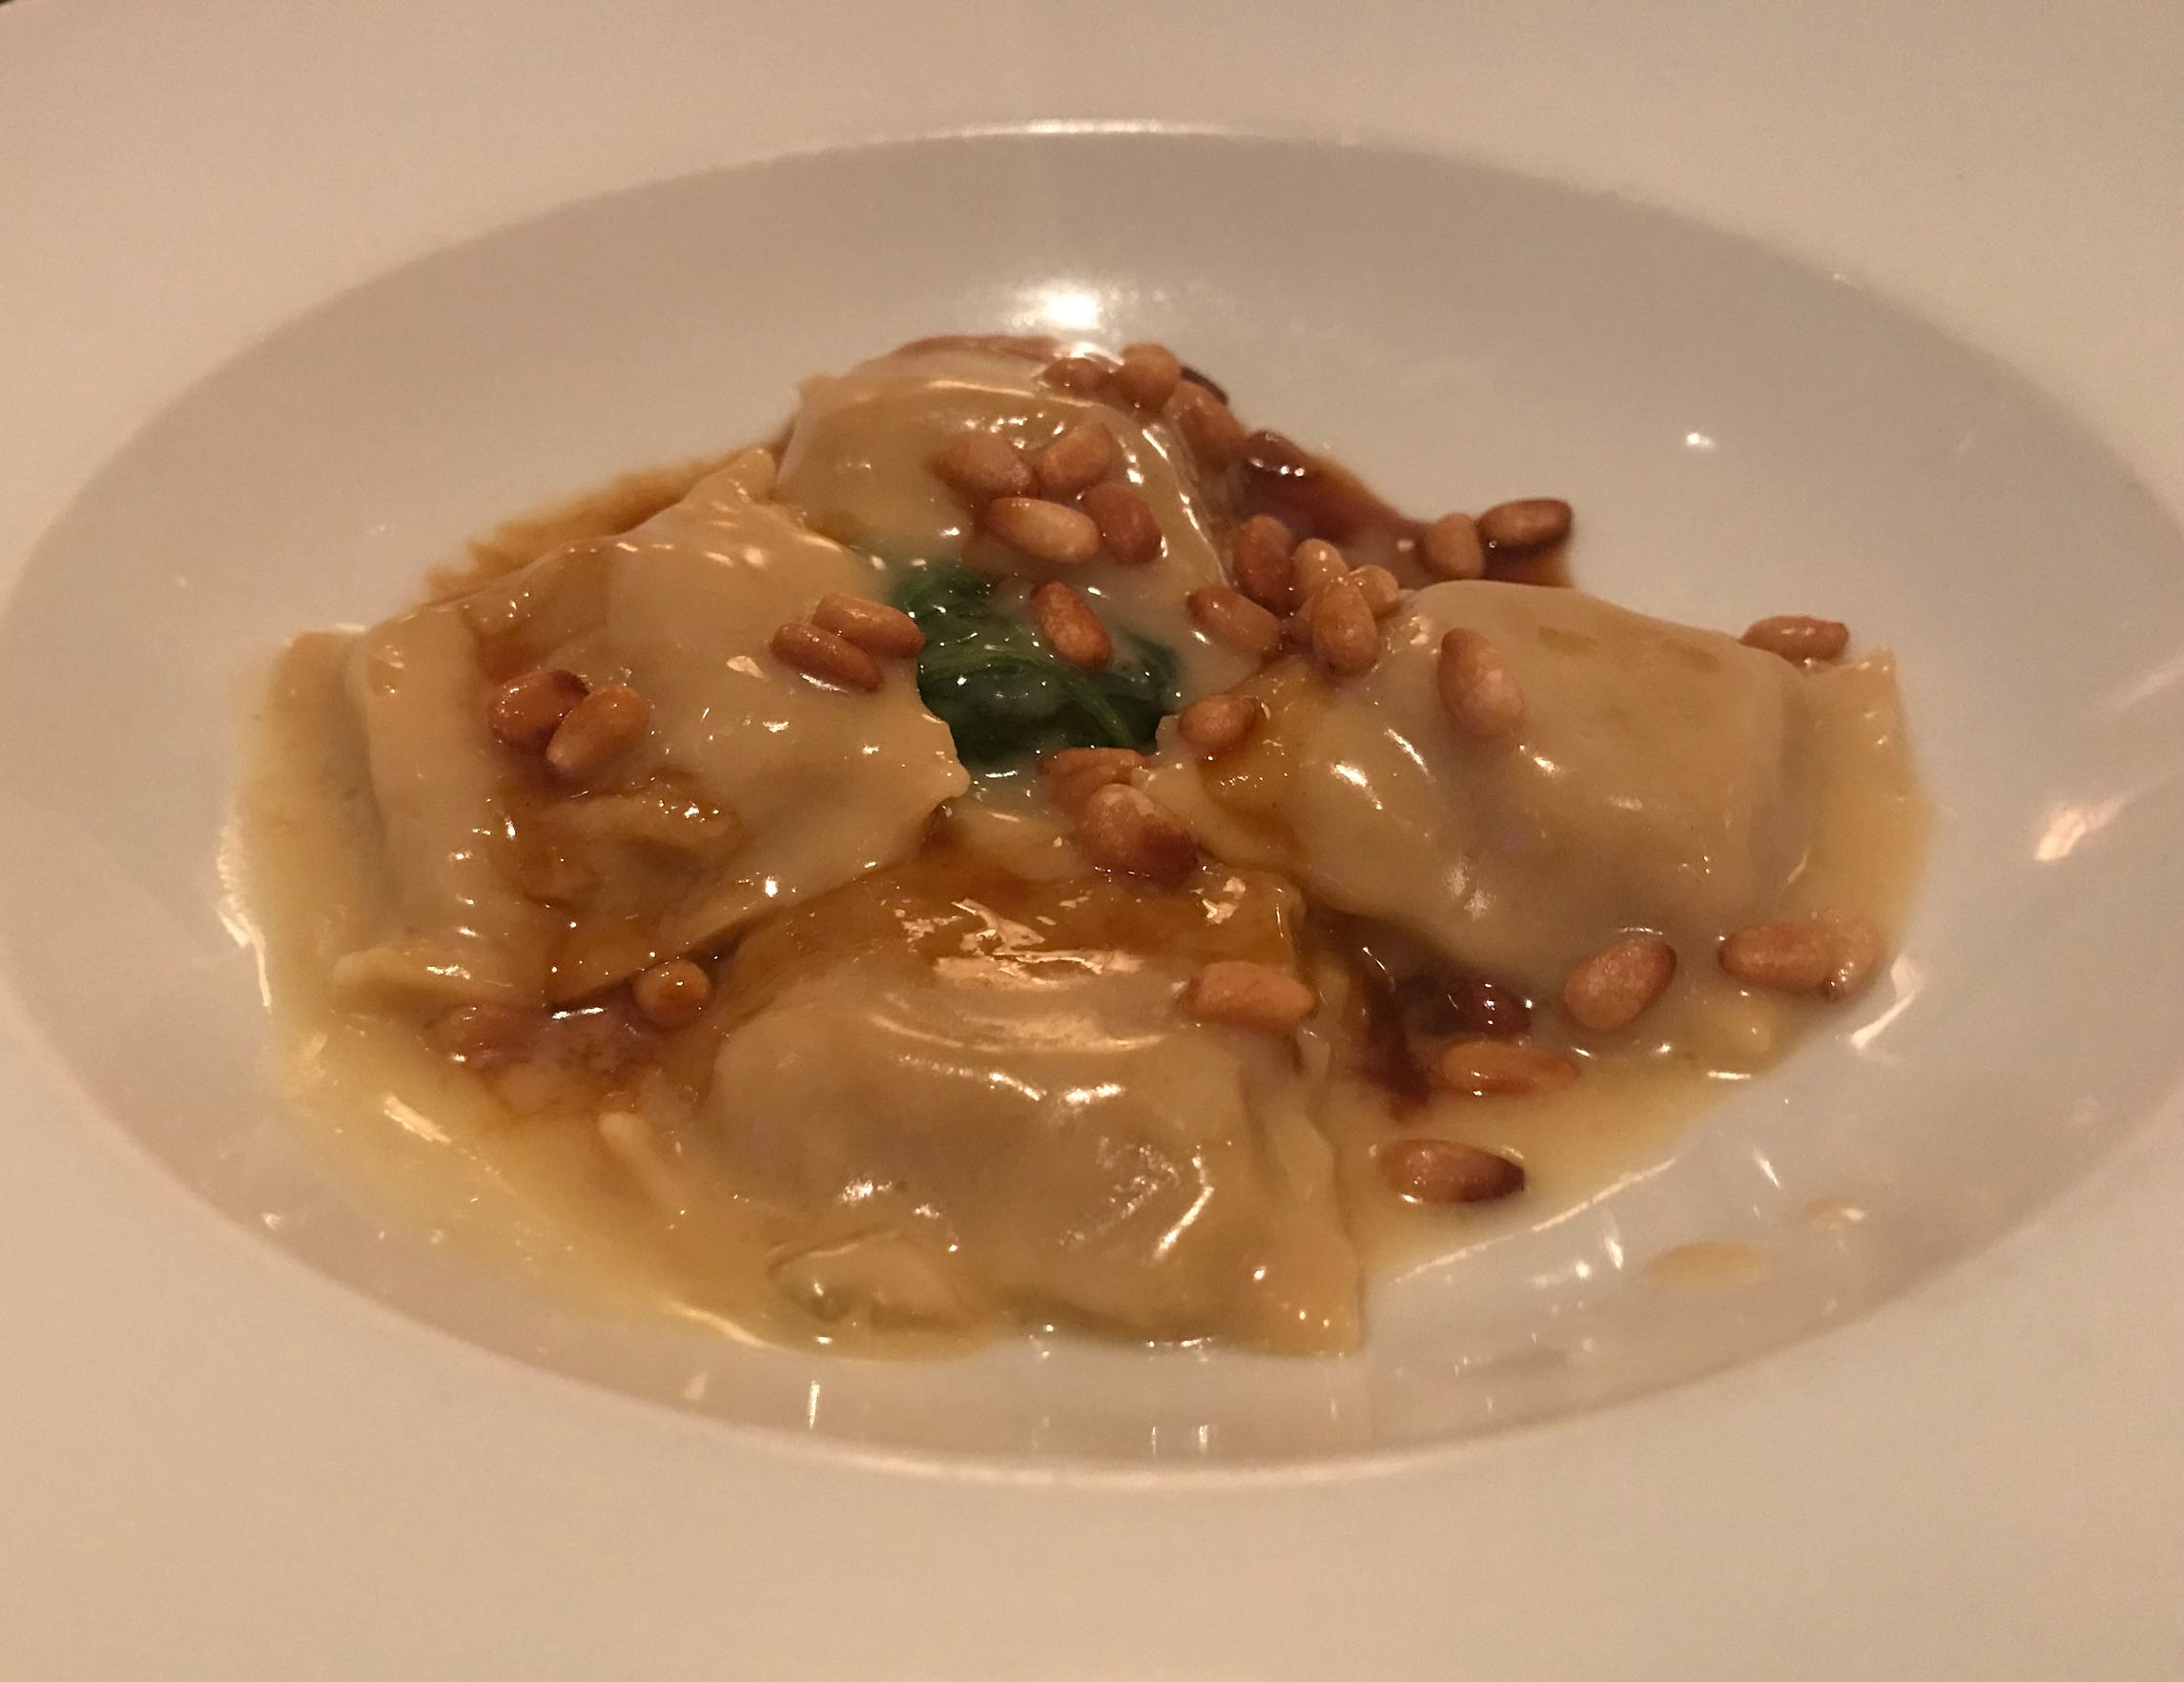 At Bacchus, 925 E. Wells St., delicate veal ravioli is served as a first course, with spinach, pine nuts, veal juices and ultra-creamy butter fonduta.